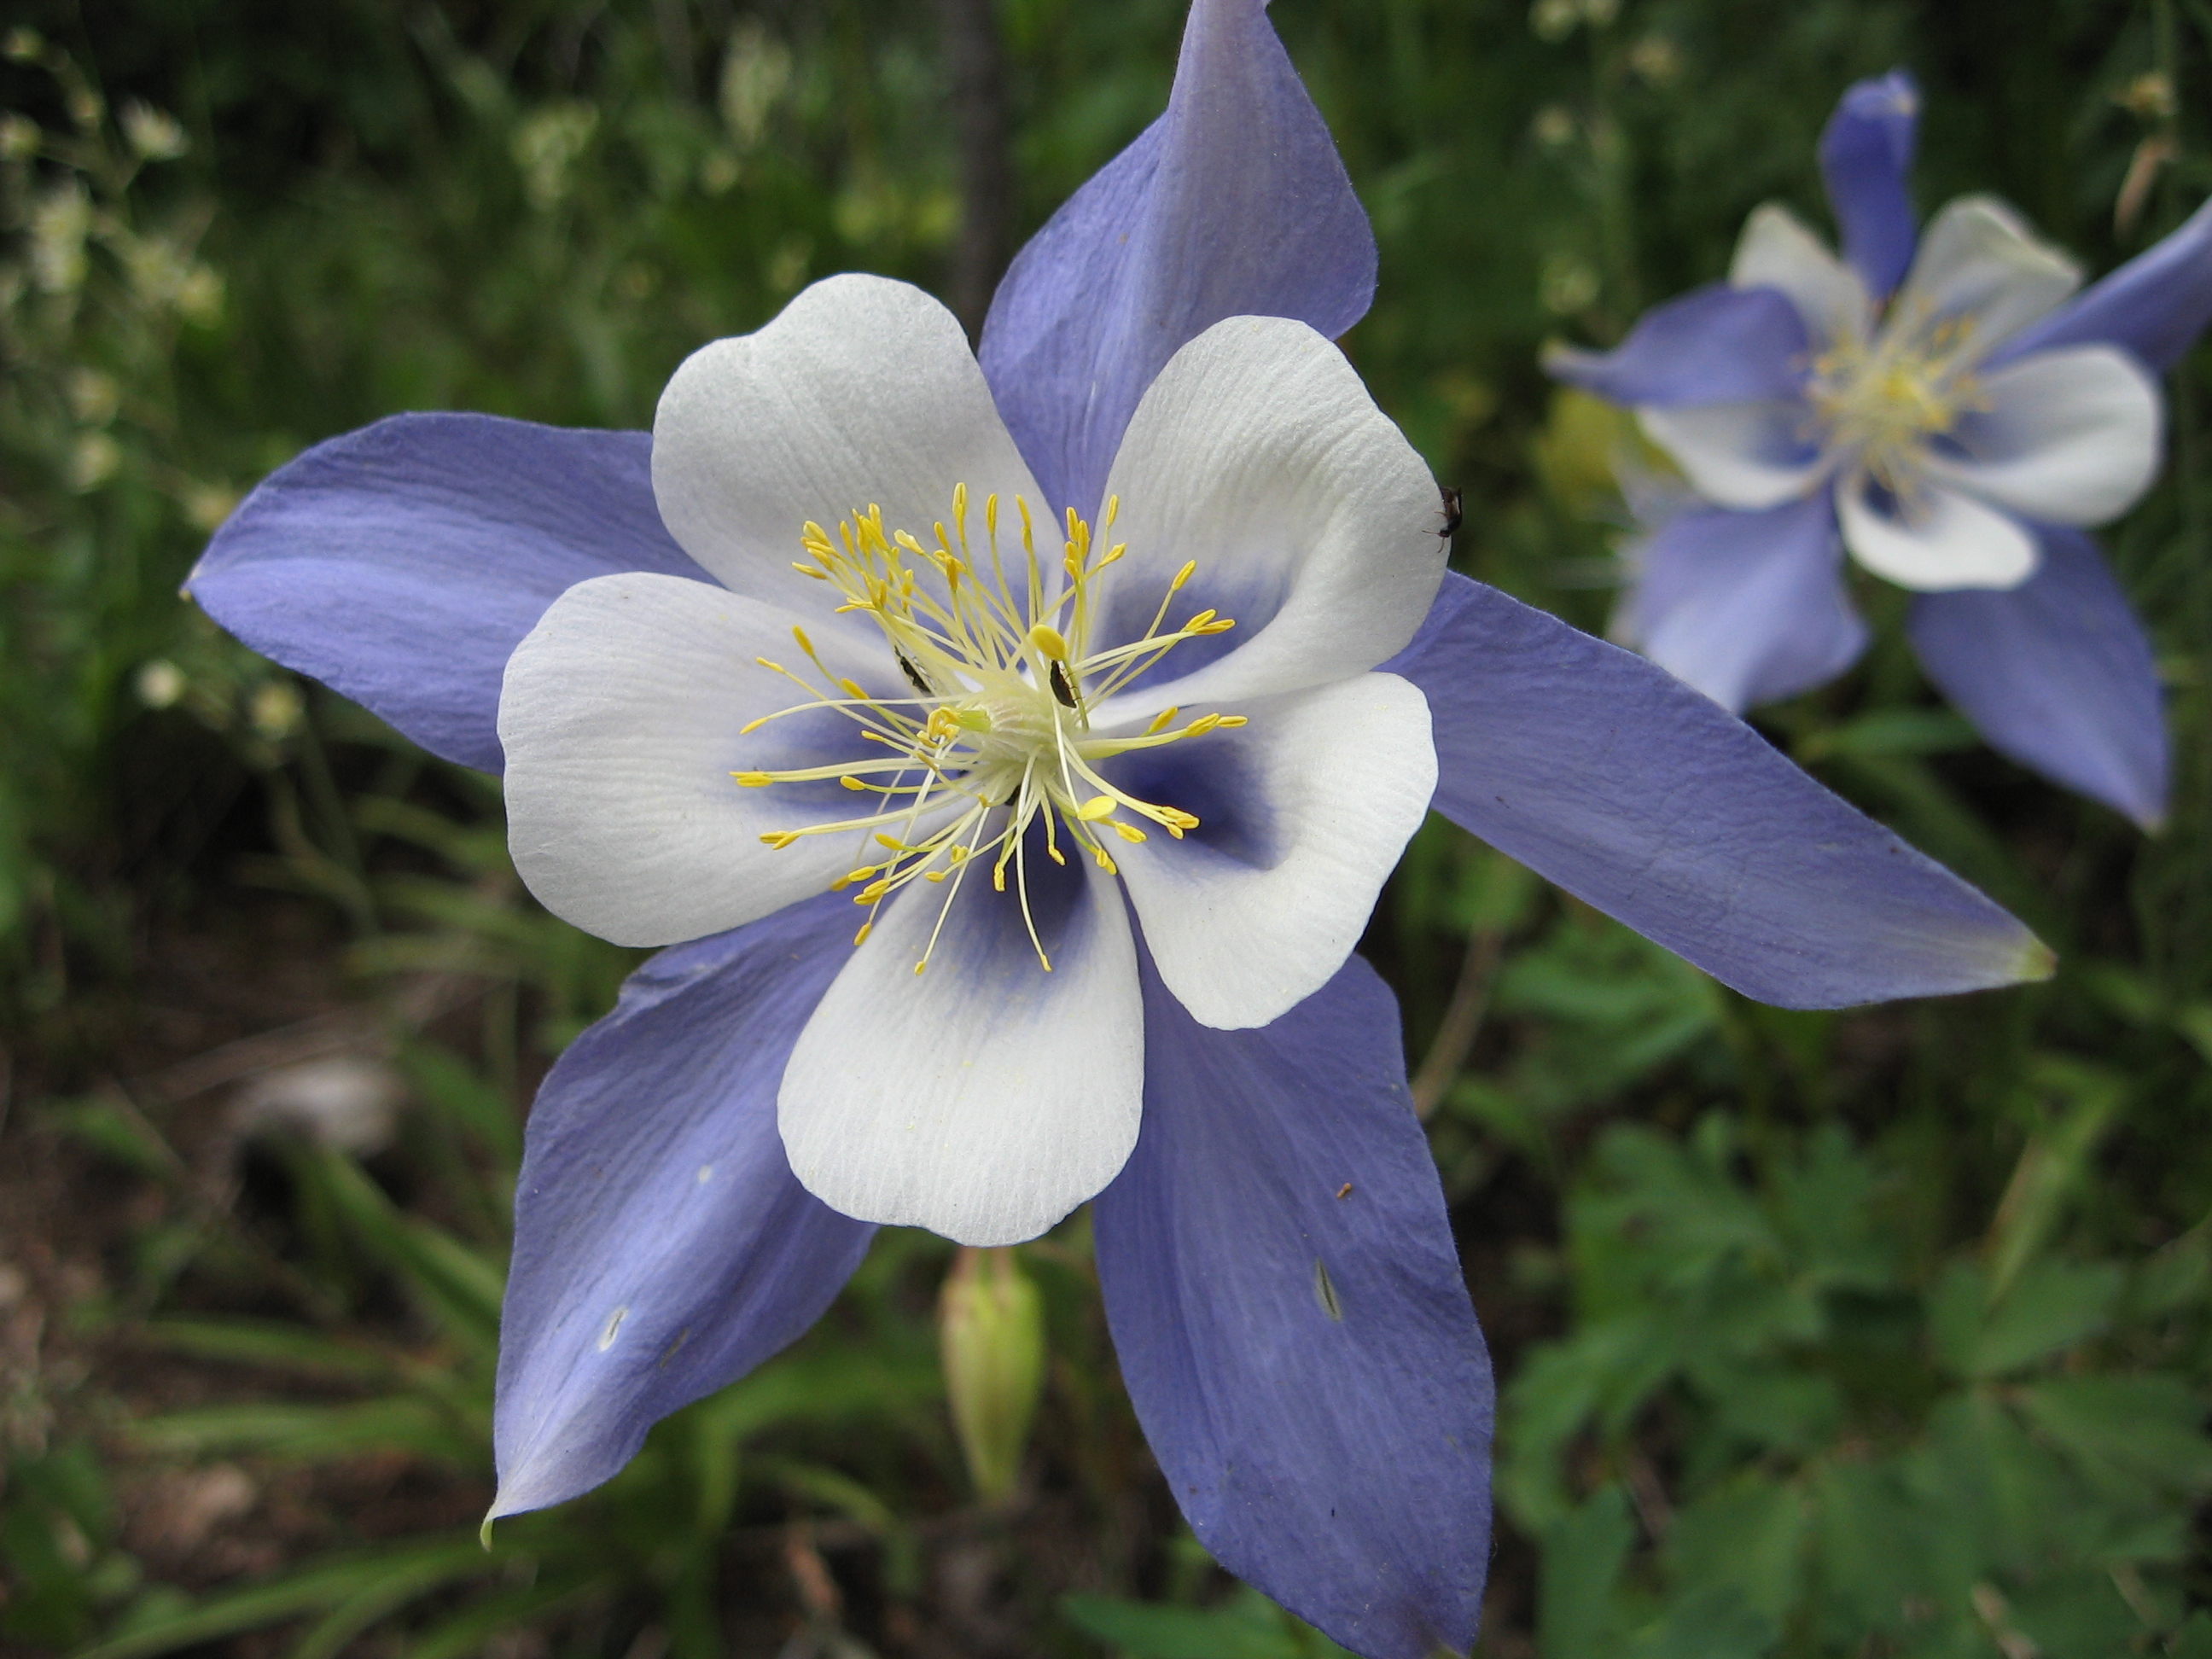 http://upload.wikimedia.org/wikipedia/commons/9/94/Aquilegia_caerulea.jpg